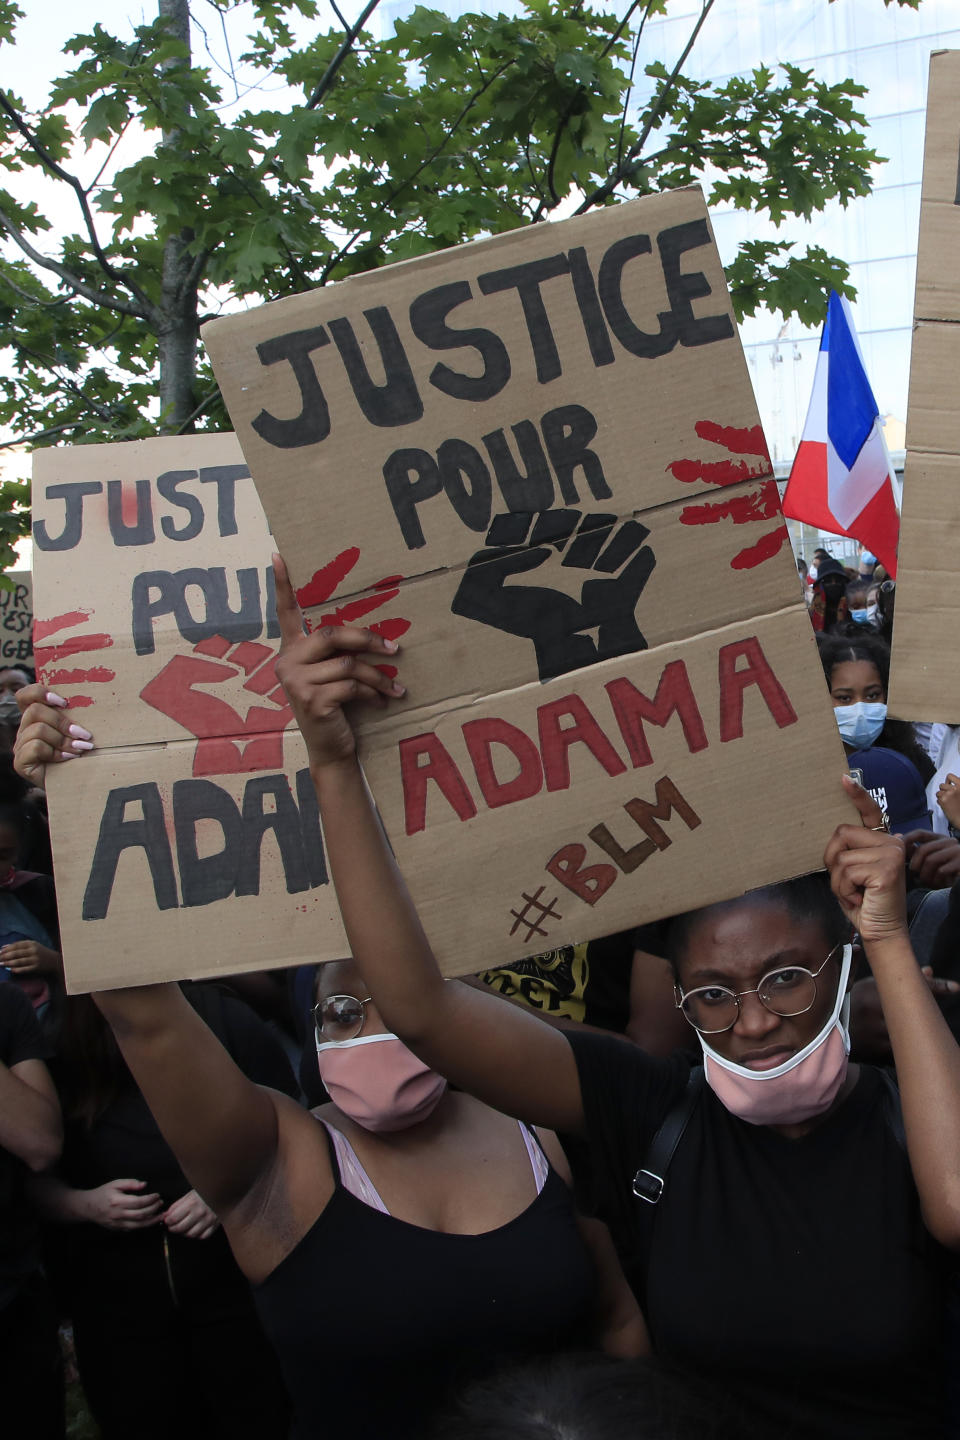 """Protesters shows posters reading """"Justice for Adama"""" outside the courthouse Tuesday, June 2, 2020 in Paris. Thousands of people defied a police ban and converged on the main Paris courthouse for a demonstration to show solidarity with U.S. protesters and denounce the death of a black man in French police custody. The demonstration was organized to honor Frenchman Adama Traore, who died shortly after his arrest in 2016, and in solidarity with Americans demonstrating against George Floyd's death. (AP Photo/Michel Euler)"""